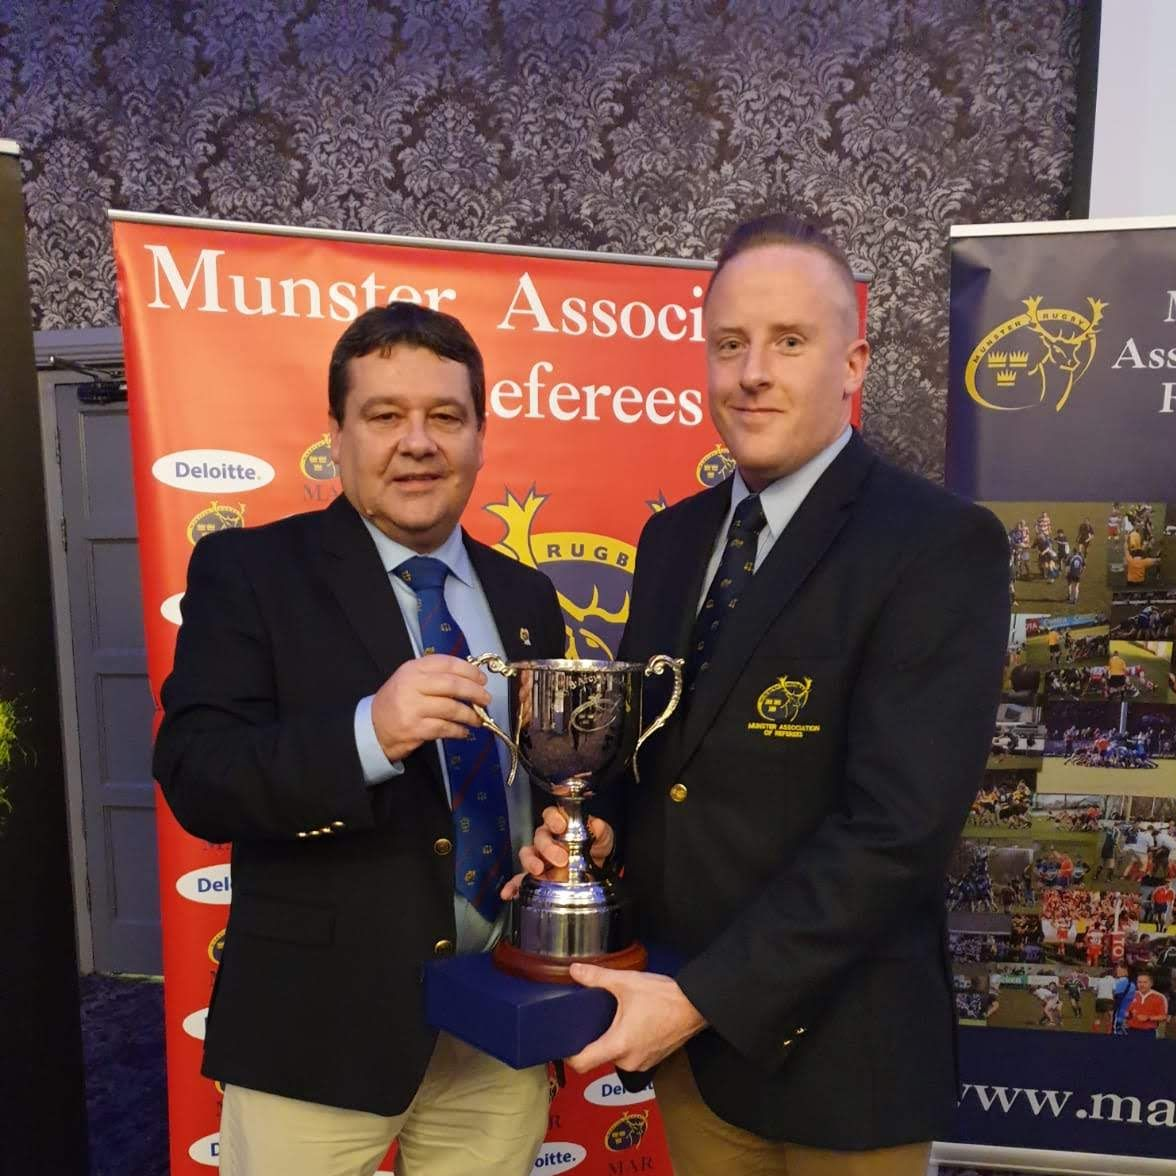 M.A.R. Referee of the Year 2019